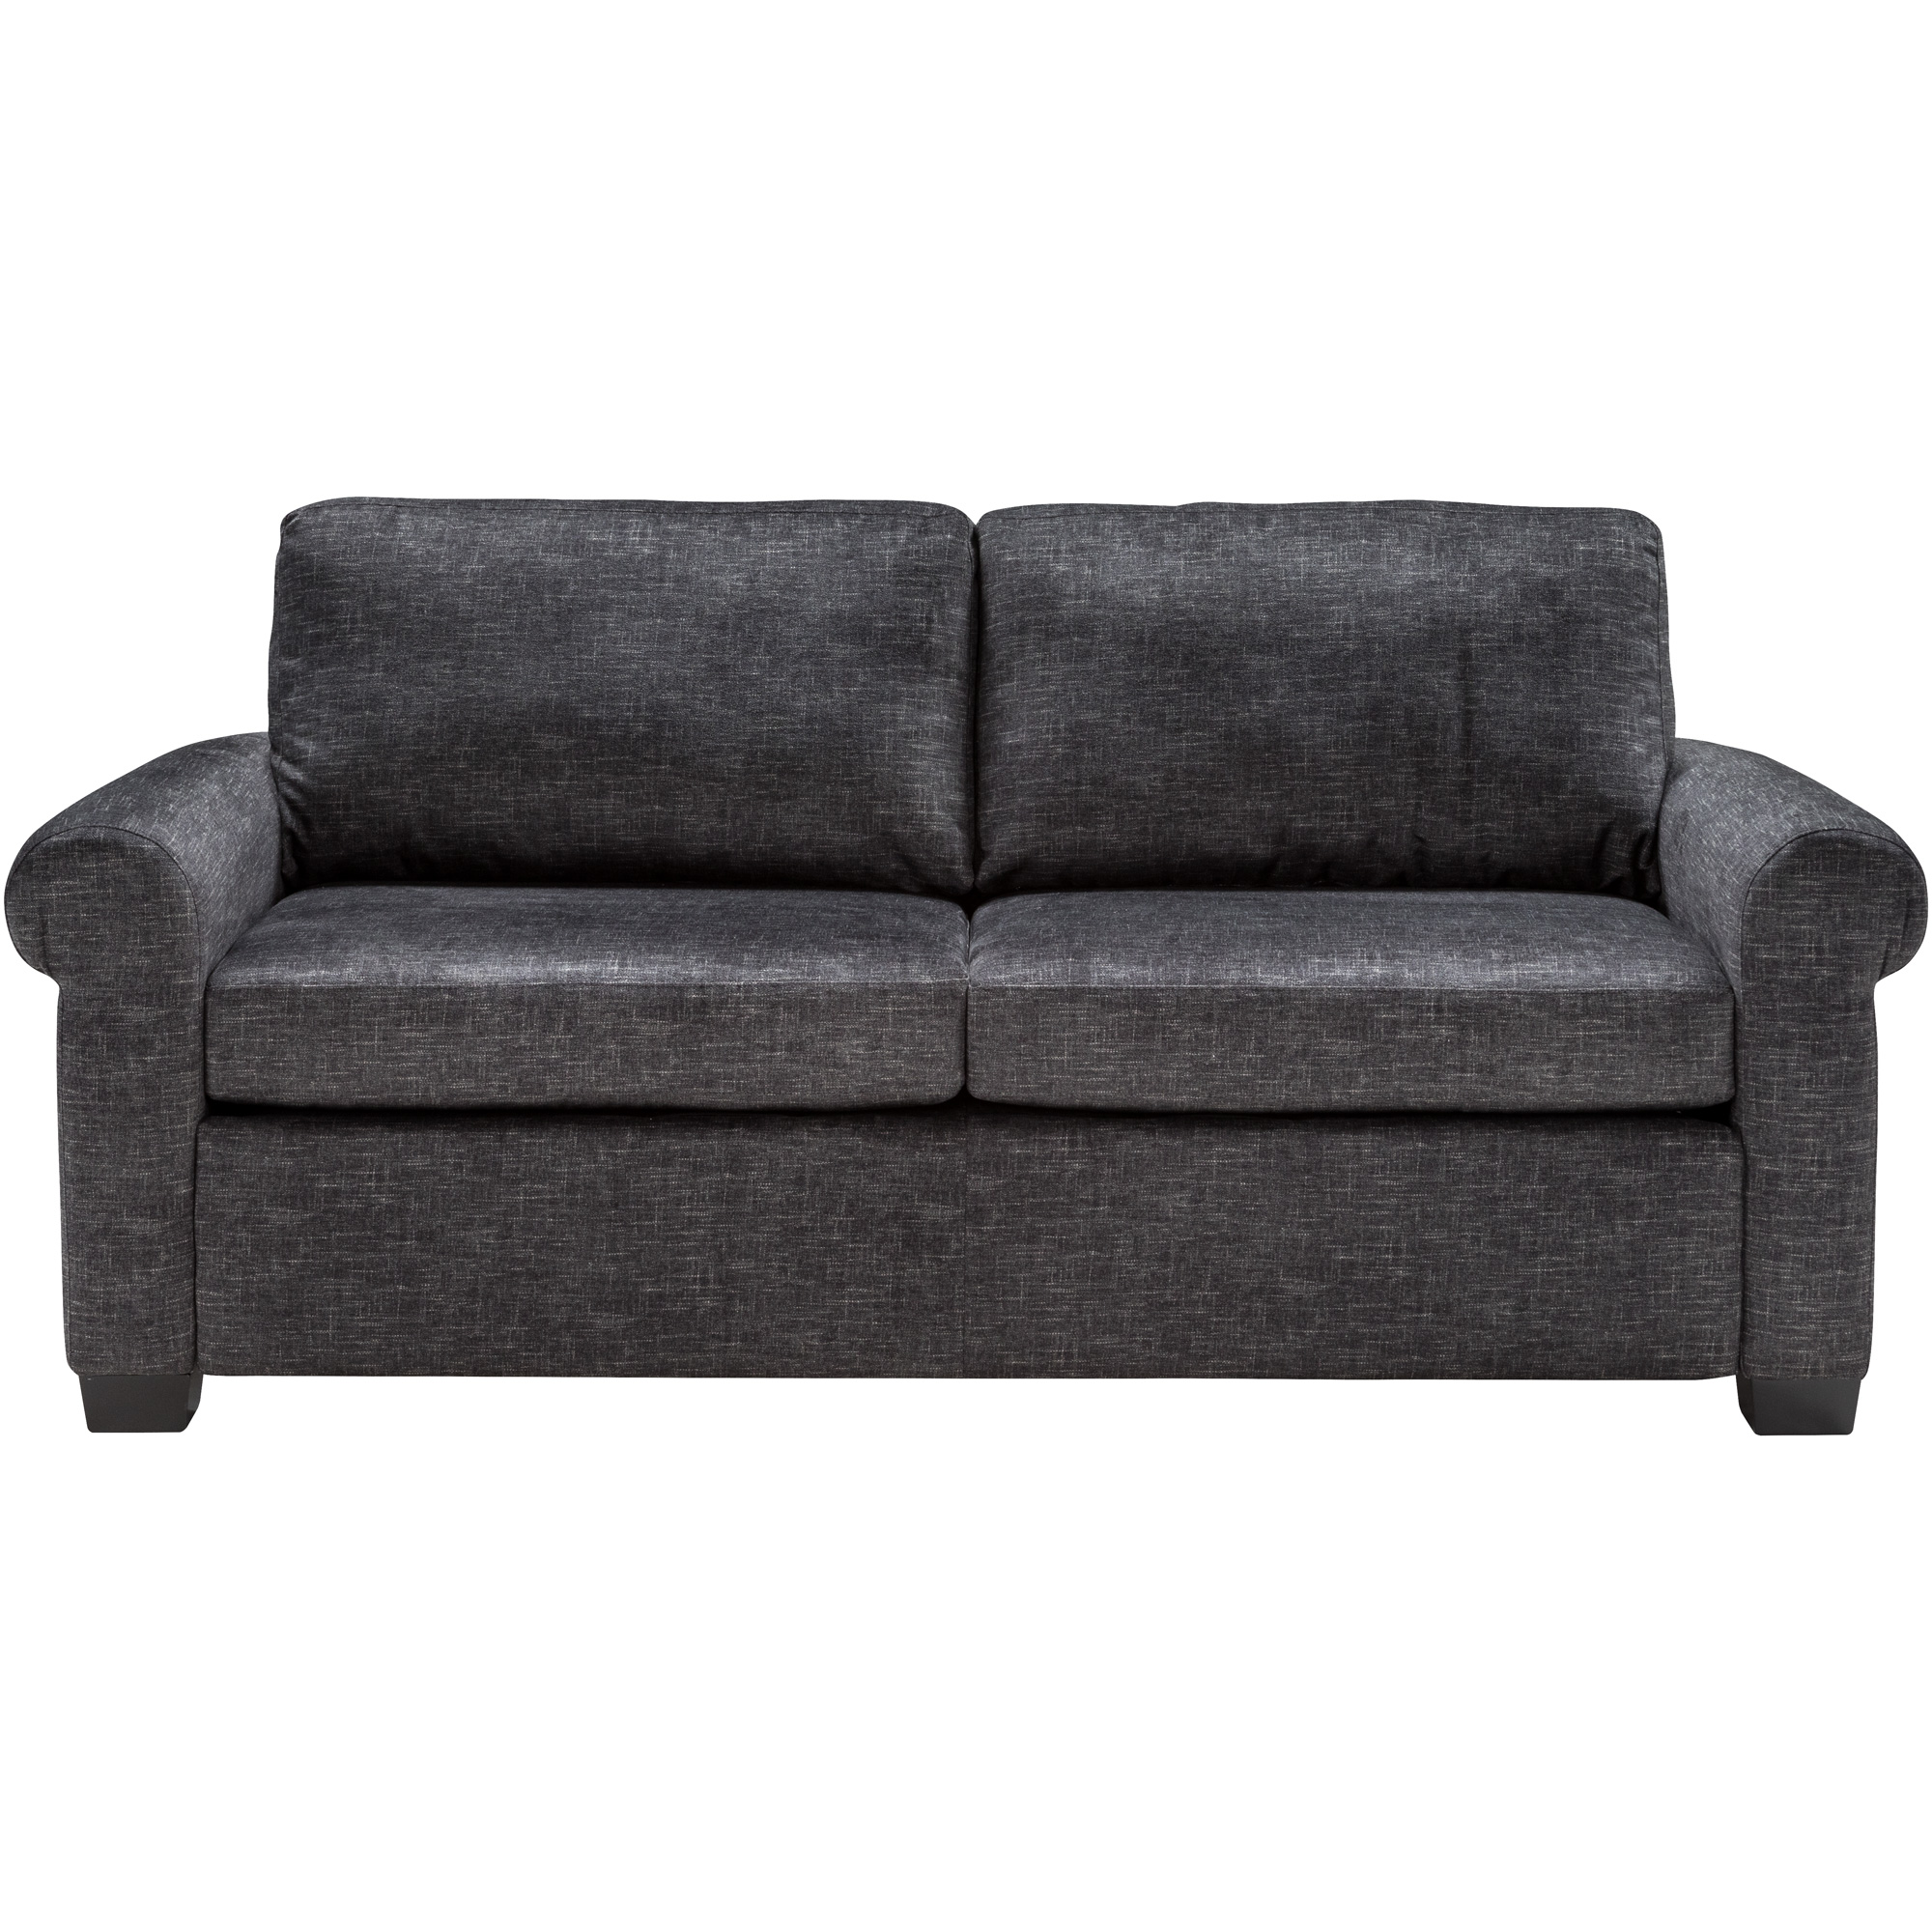 American Leather | Cortland Alton Charcoal Queen Sleeper Sofa